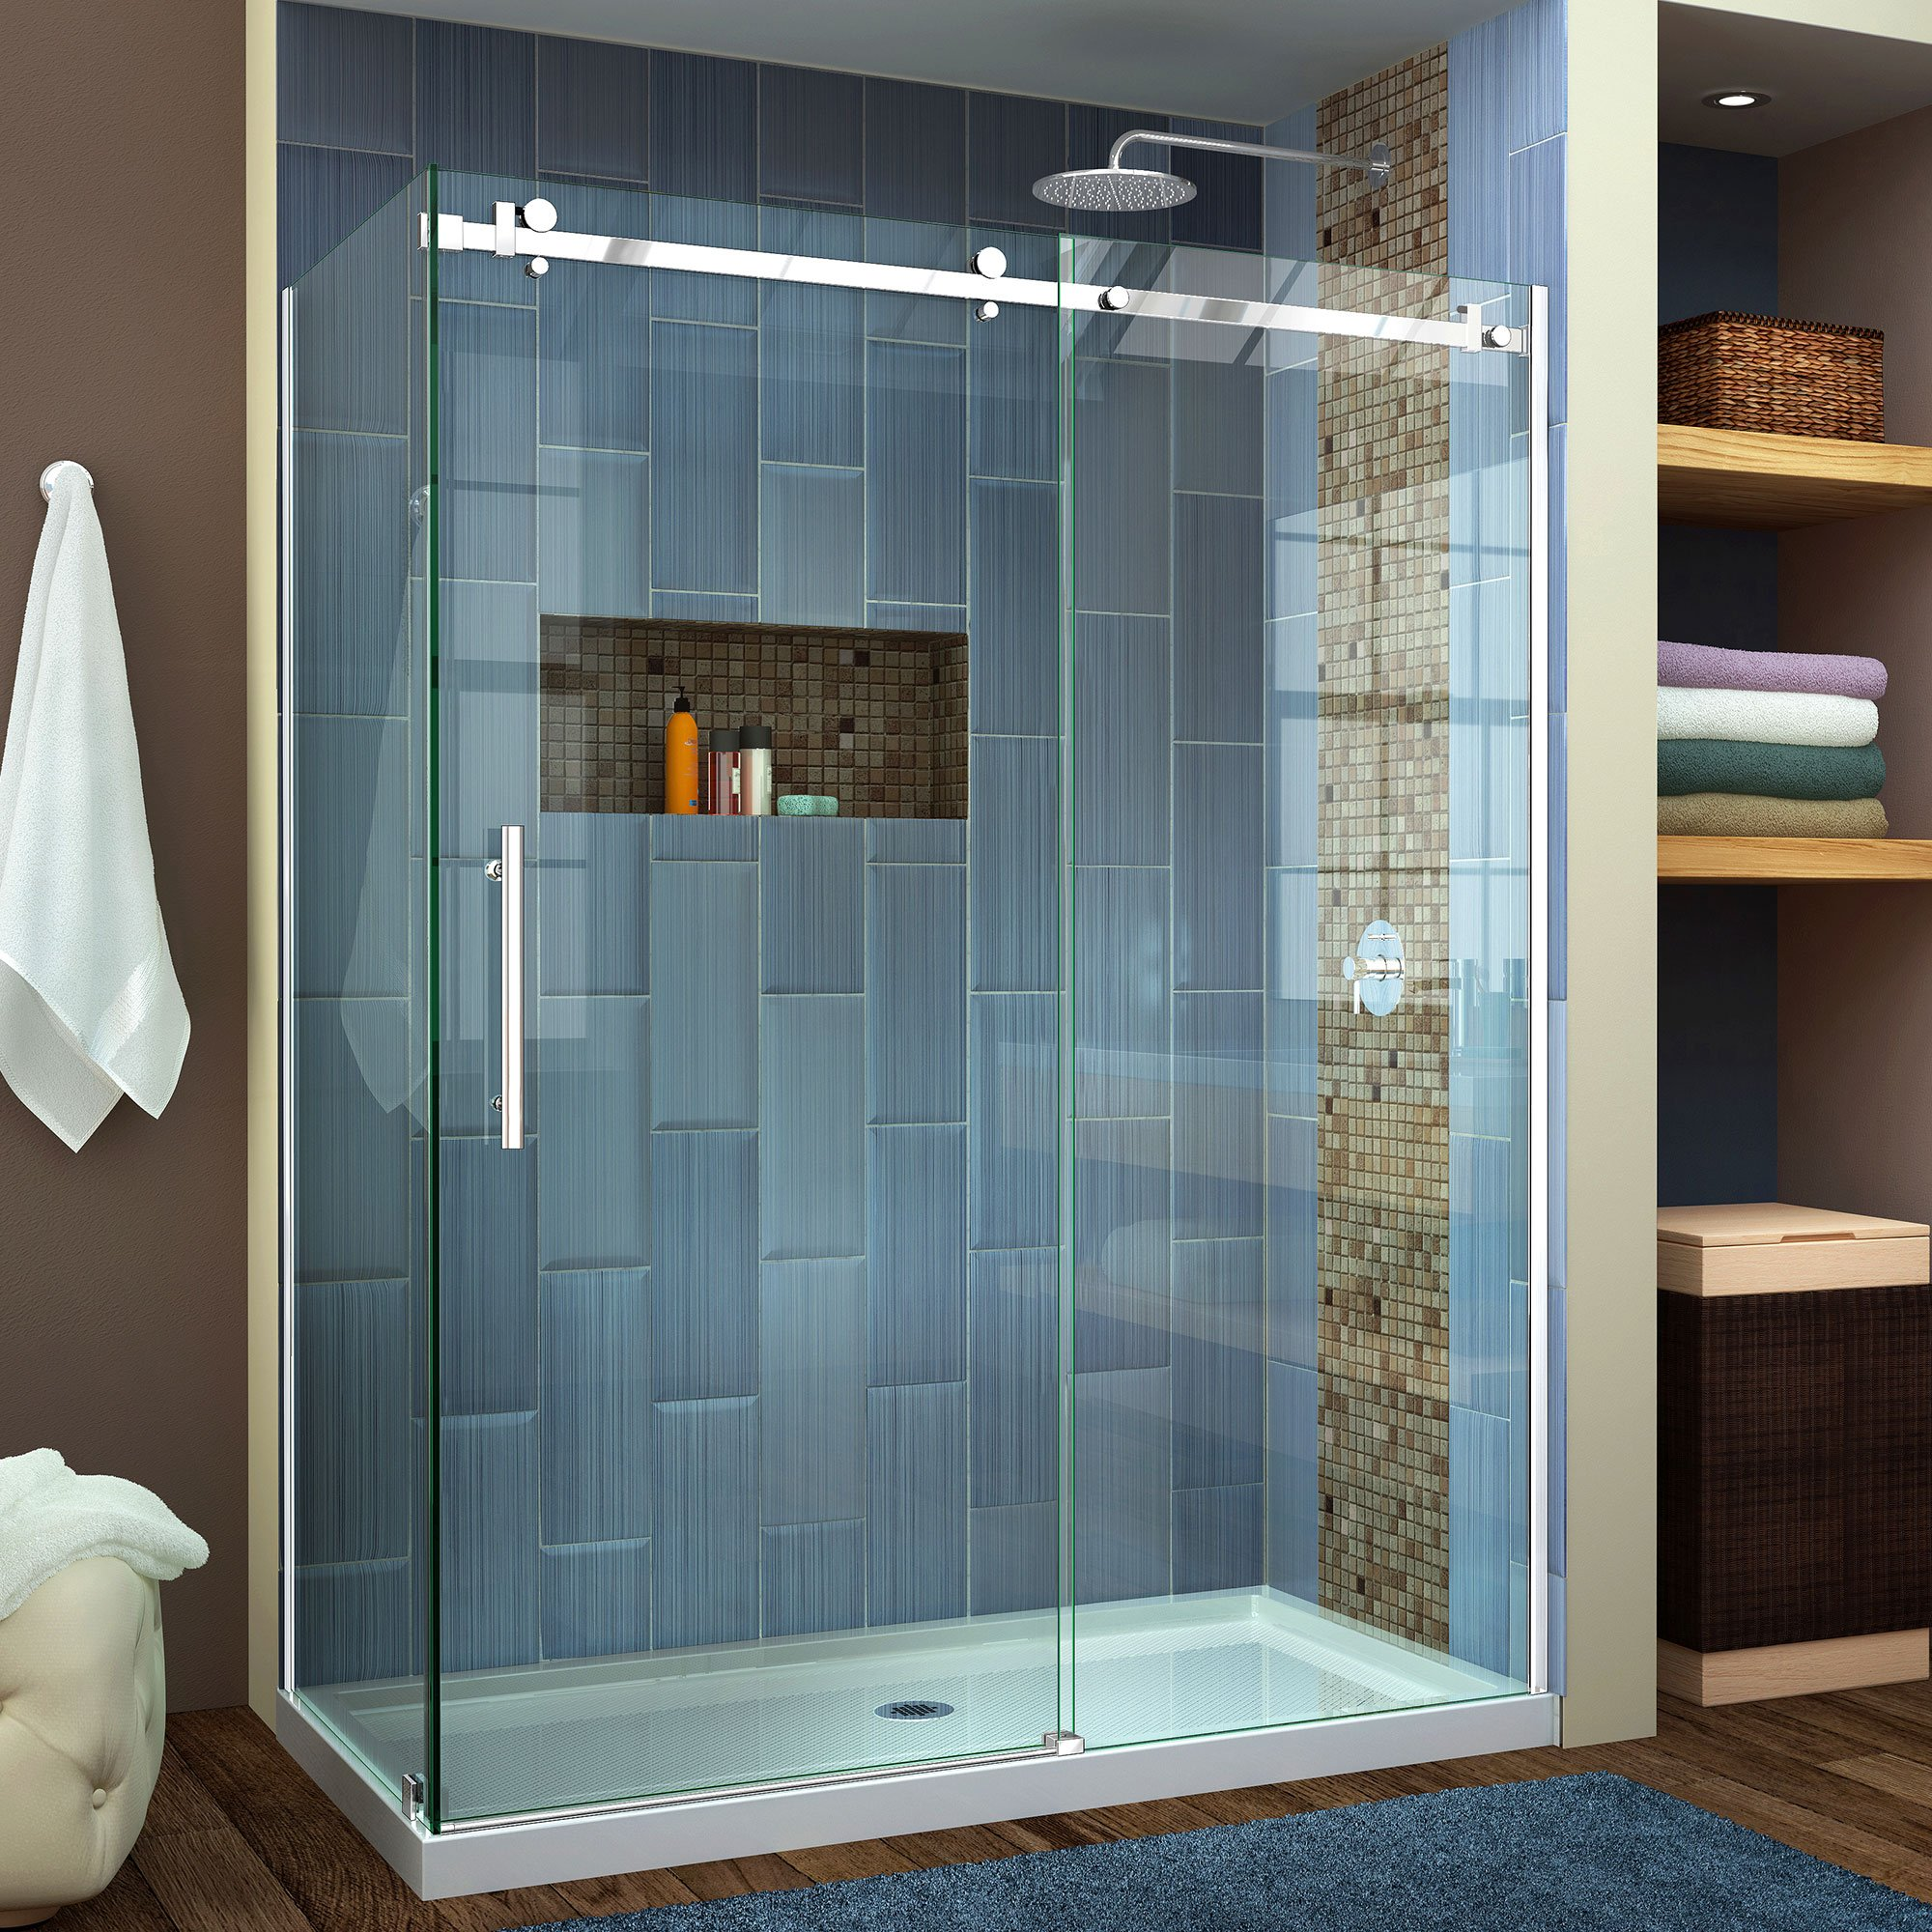 DreamLine Enigma Air 34 3/4 in. D x 60 3/8 in. W x 76 in. H Frameless Sliding Shower Enclosure in Polished Stainless Steel, SHEN-6434600-08